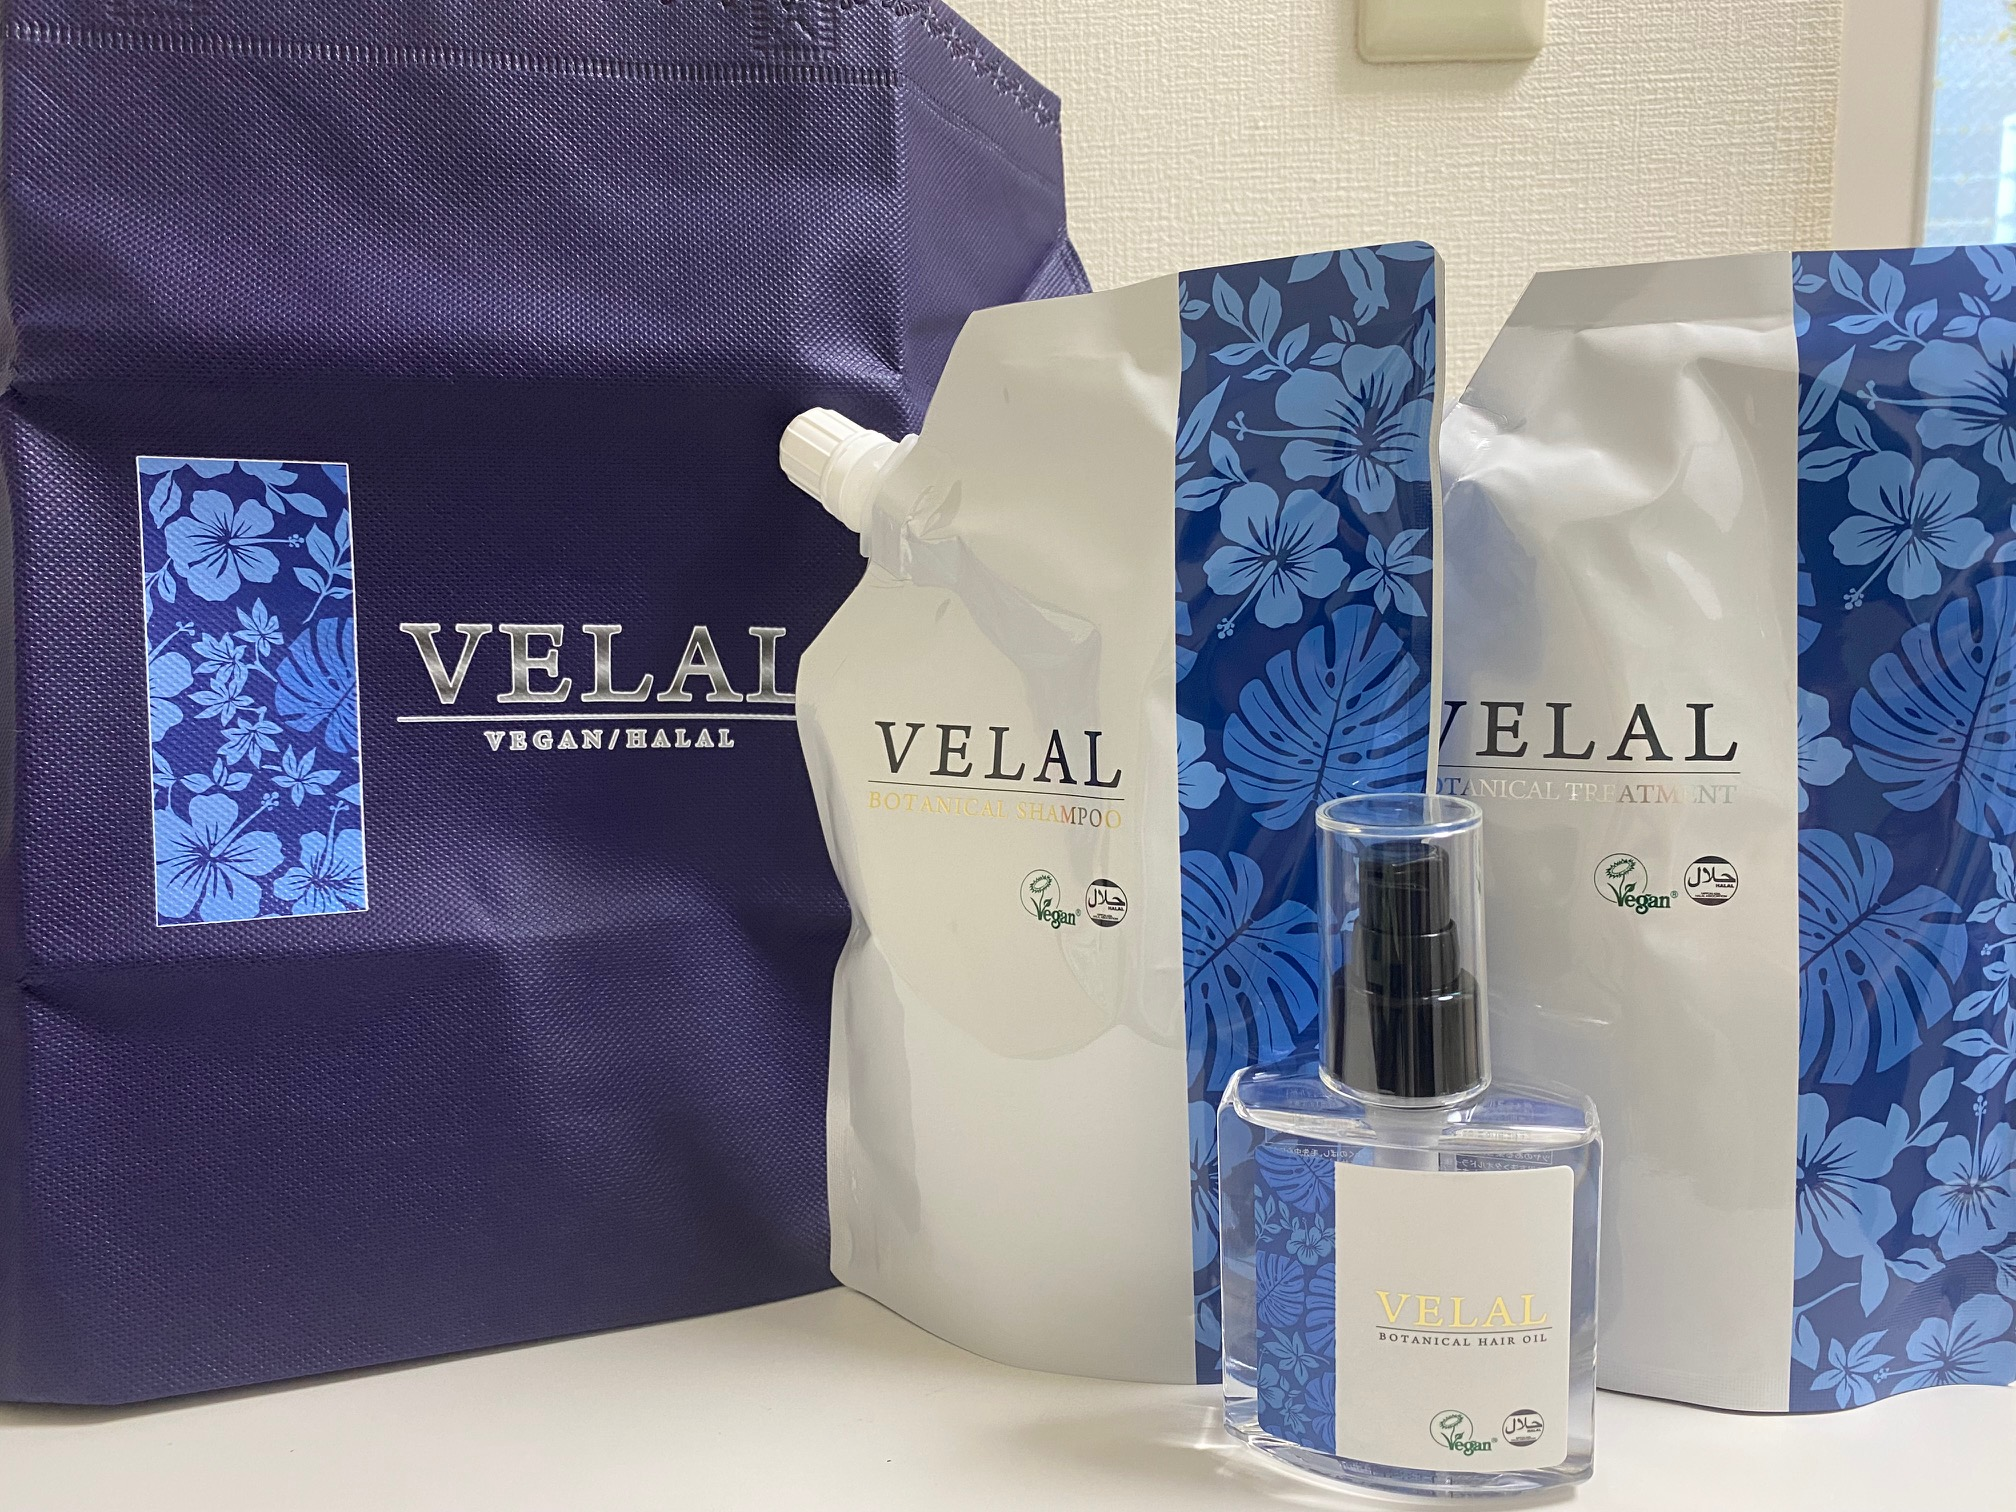 Velal products